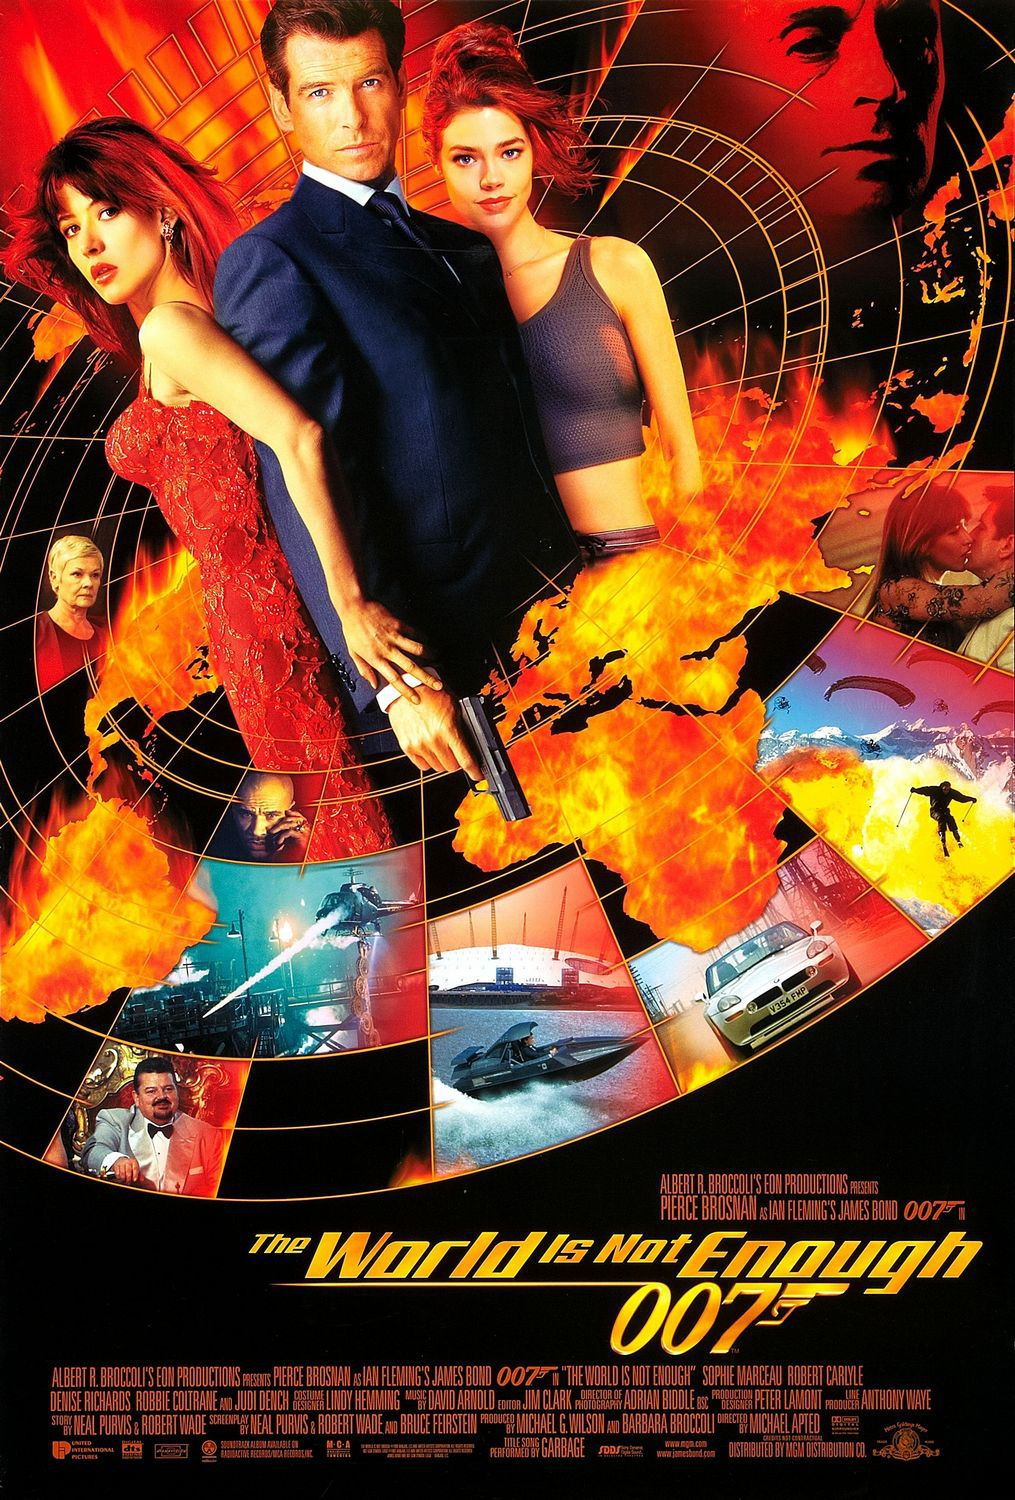 007 World is not Enough - film poster